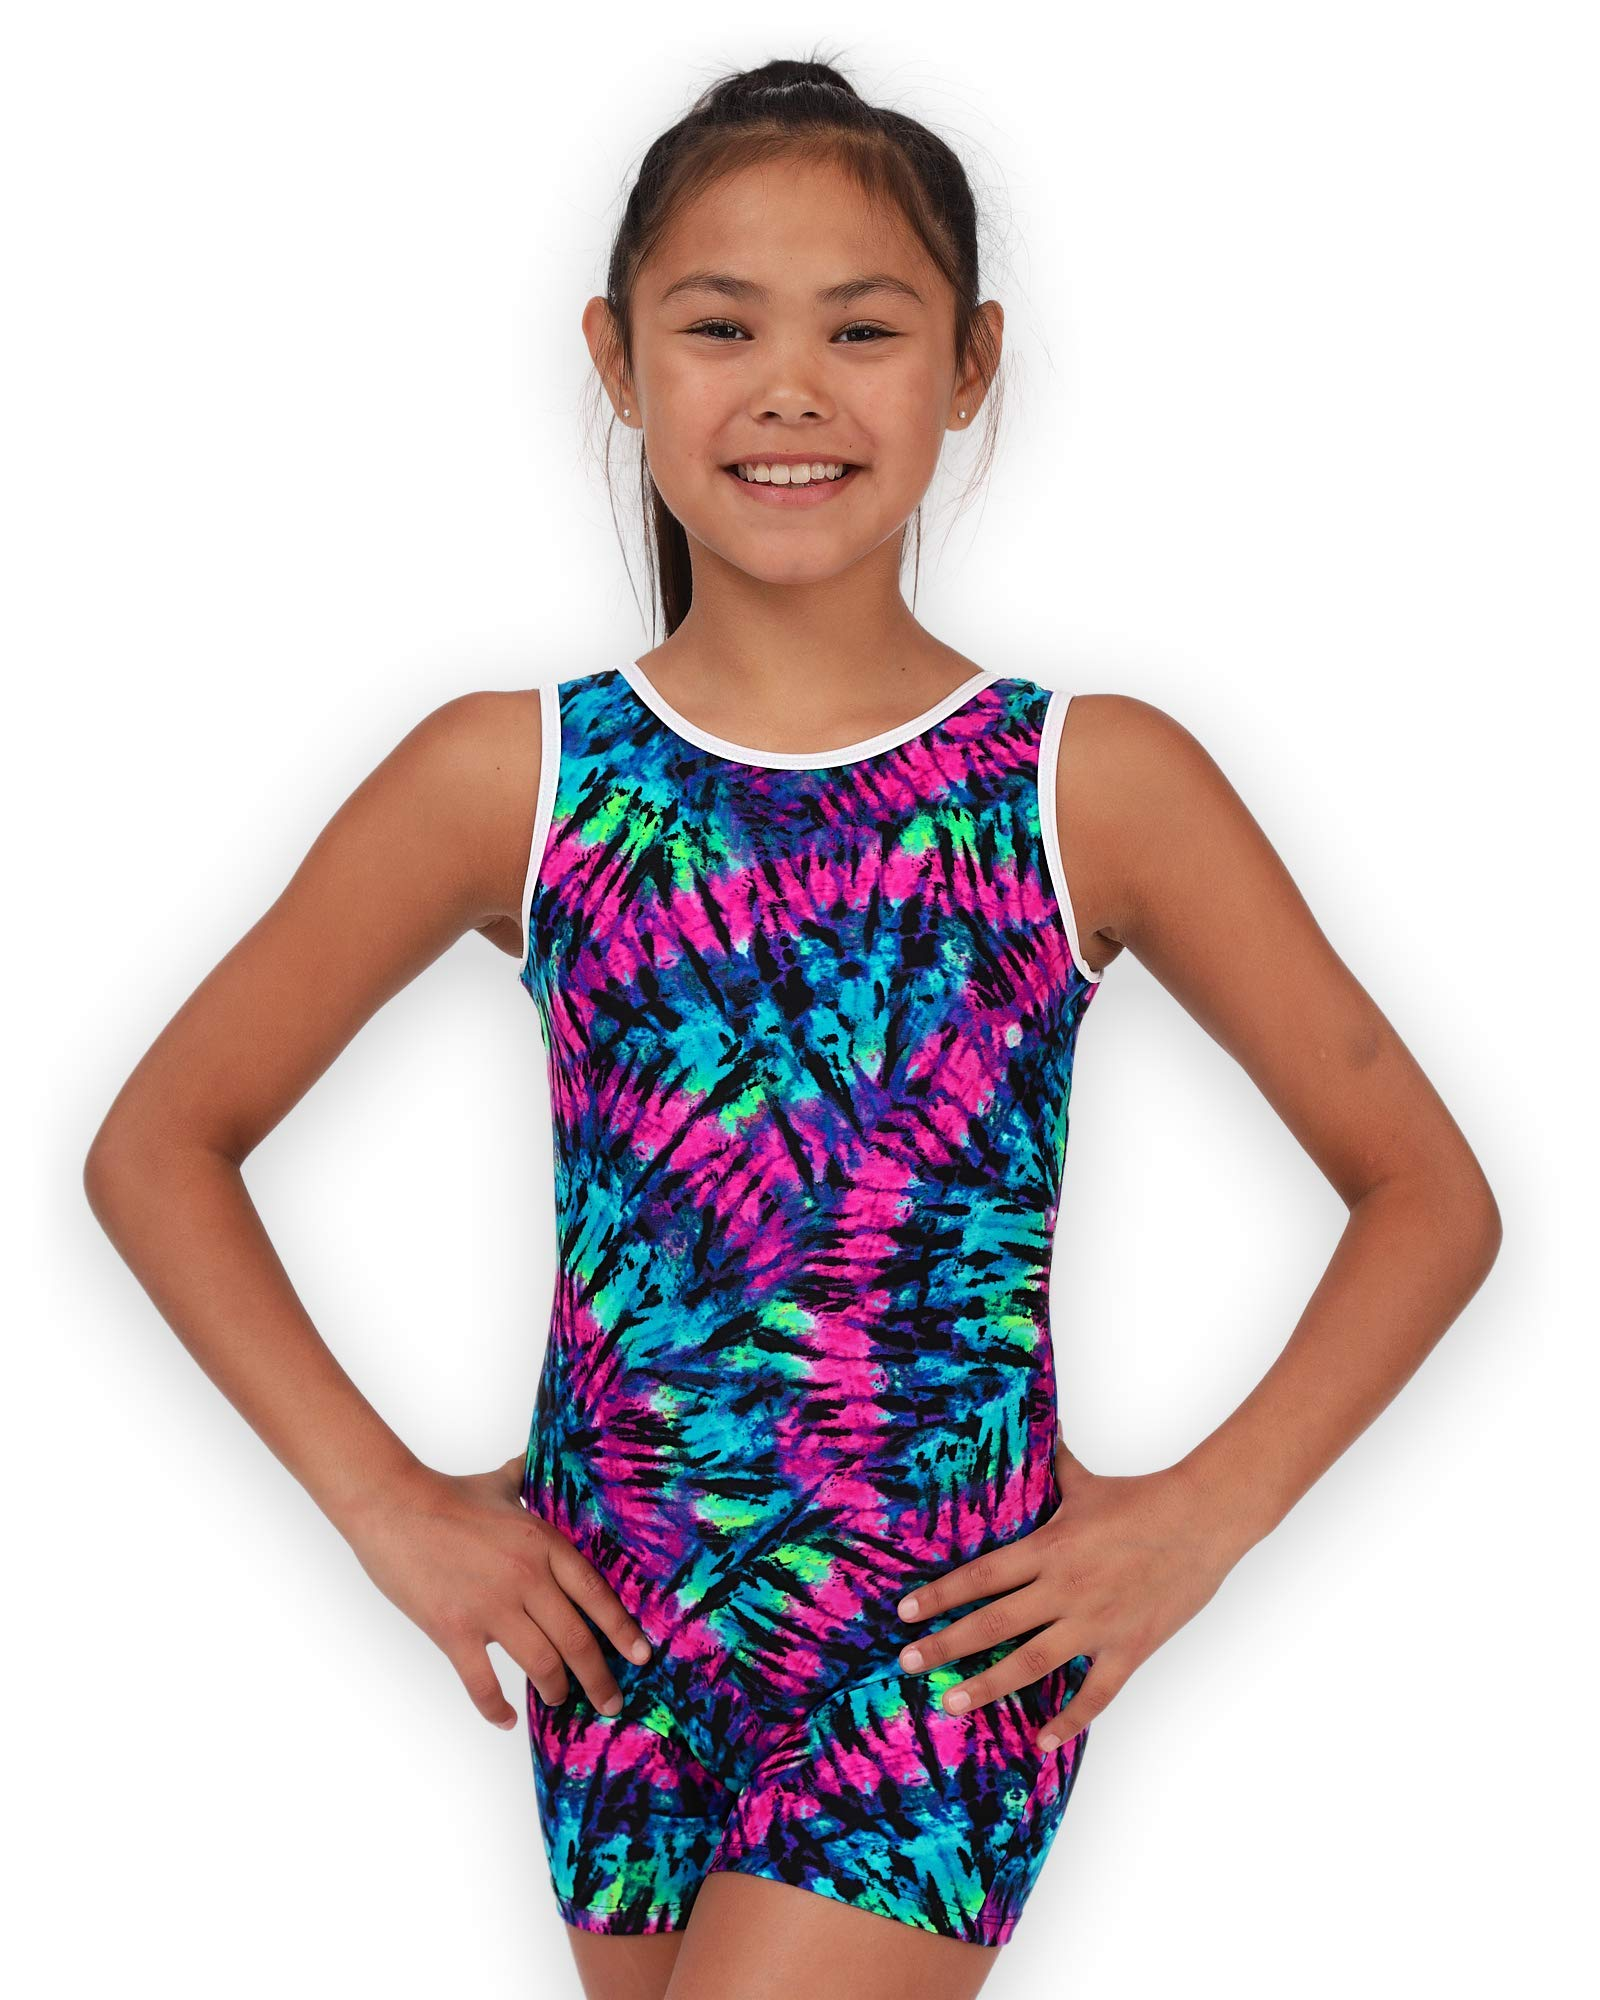 Pelle Gymnastics Biketard/Unitard - Purple Tie-Dye - C Medium